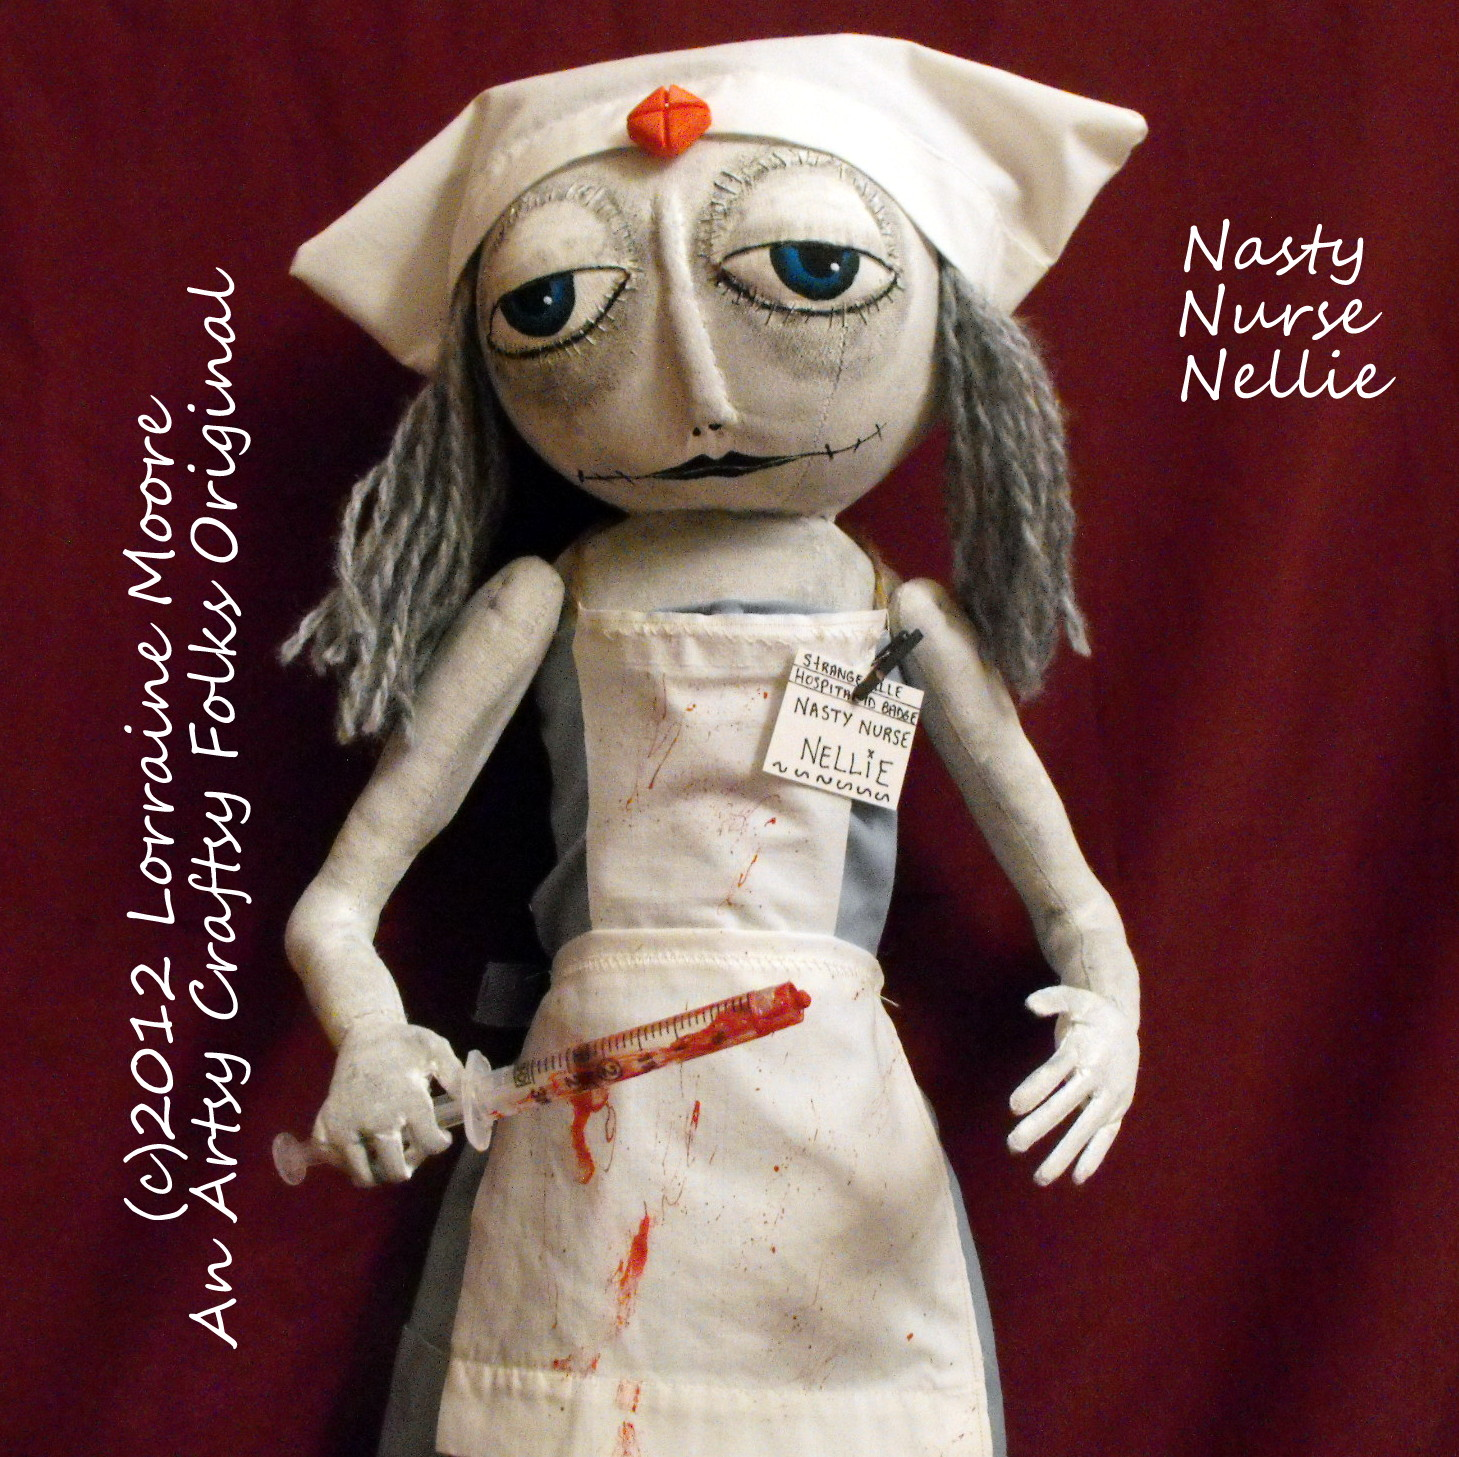 06b69ea5ae74a Artsy Craftsy Folks Original Art Dolls: Nasty Nurse Nellie - New ...